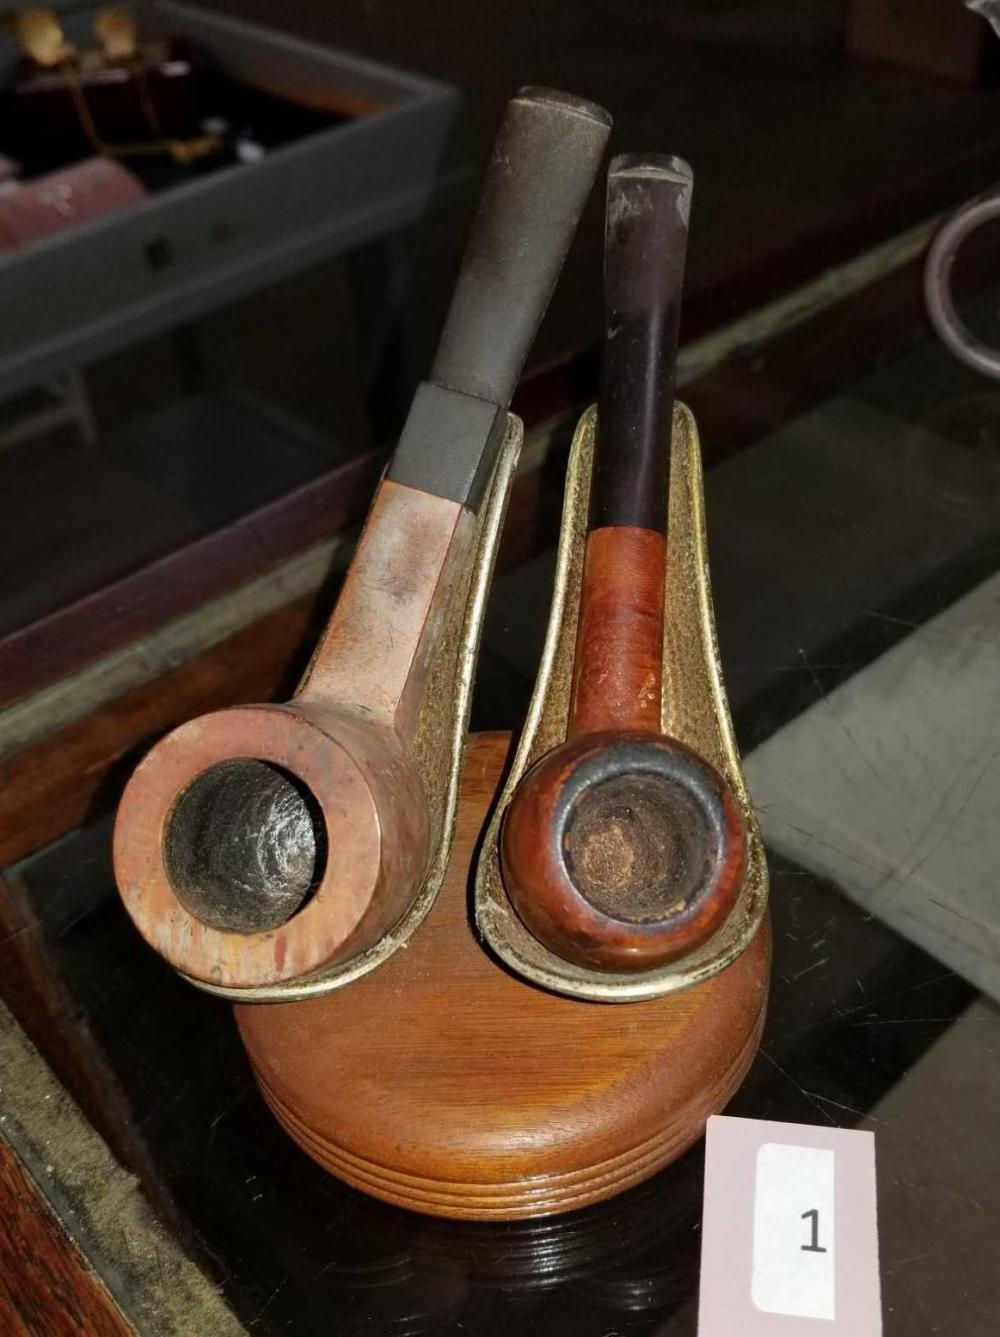 VINTAGE SMOKING PIPES ON A STAND - 3 ITEMS